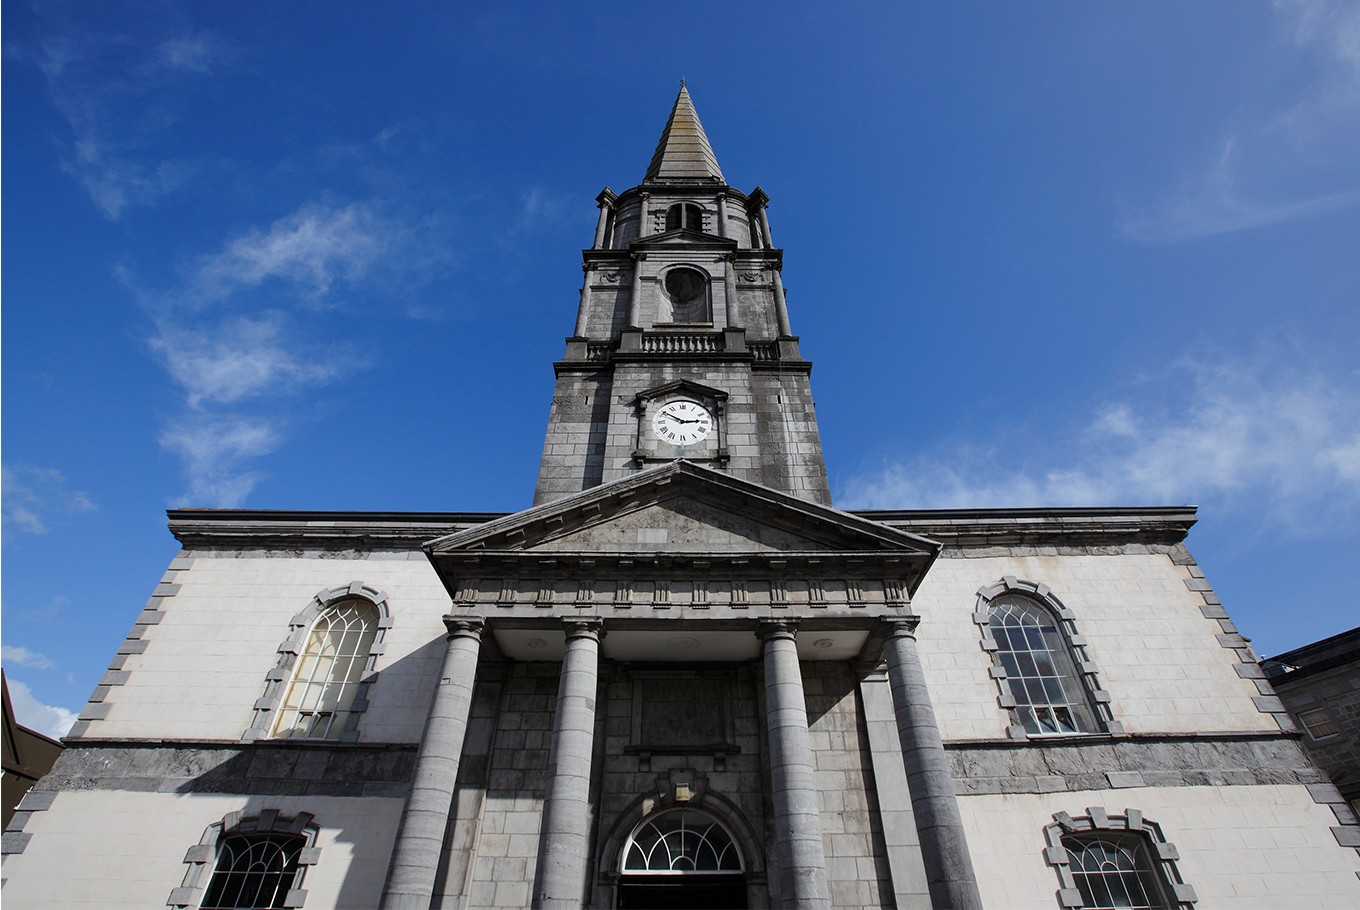 An elegant church in Waterford.